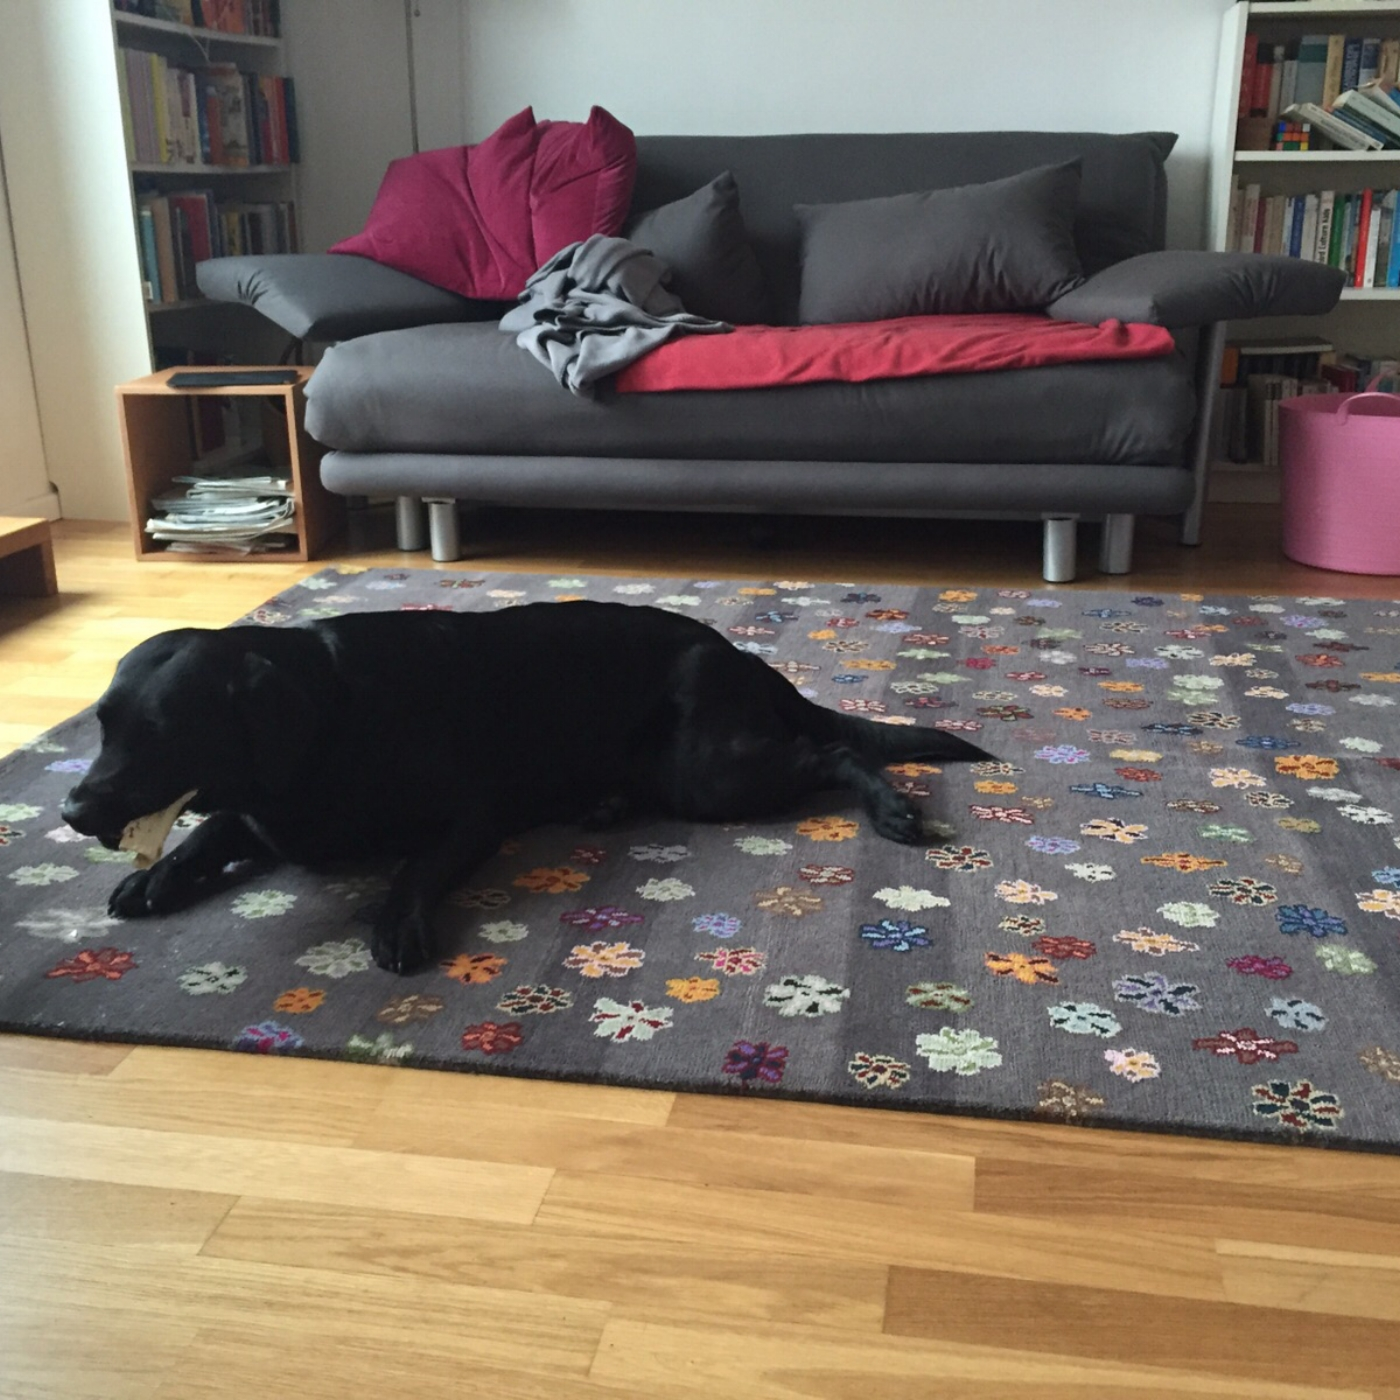 Dog on the rug - A JAN KATH CARPET FOR A PRIVATE DOG-LOVING HOME